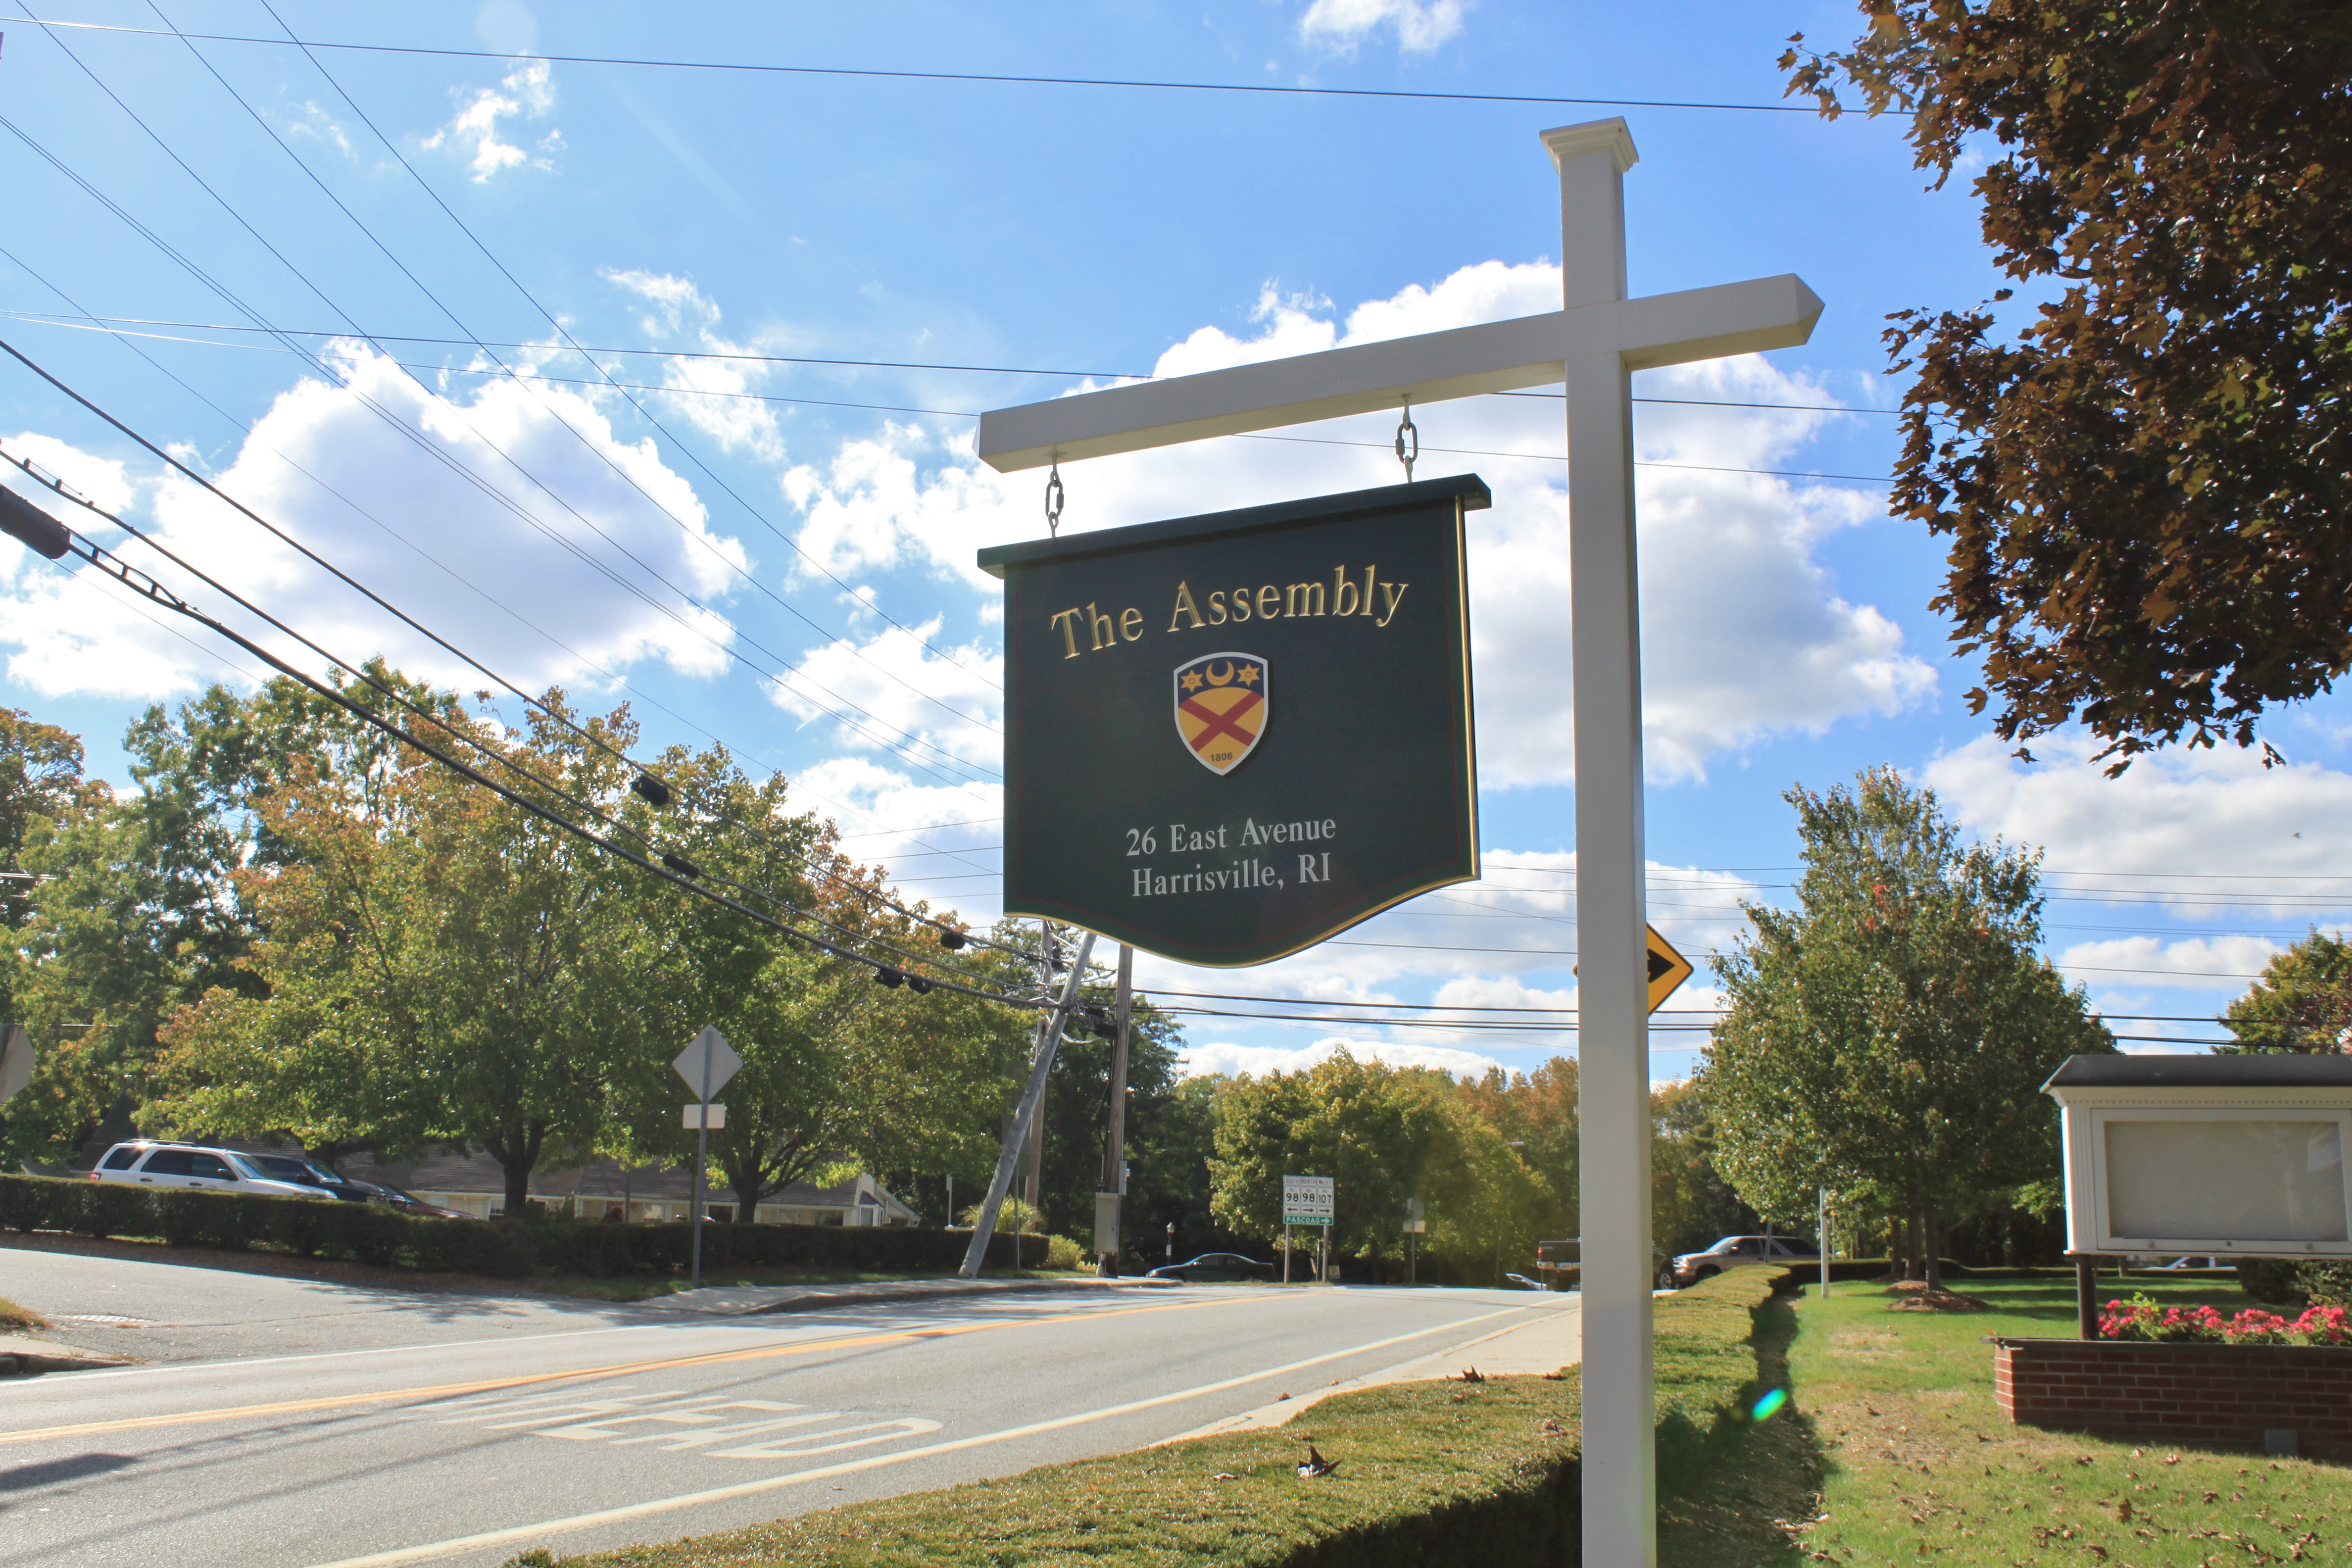 The Assembly Theater holds plays and other performances.